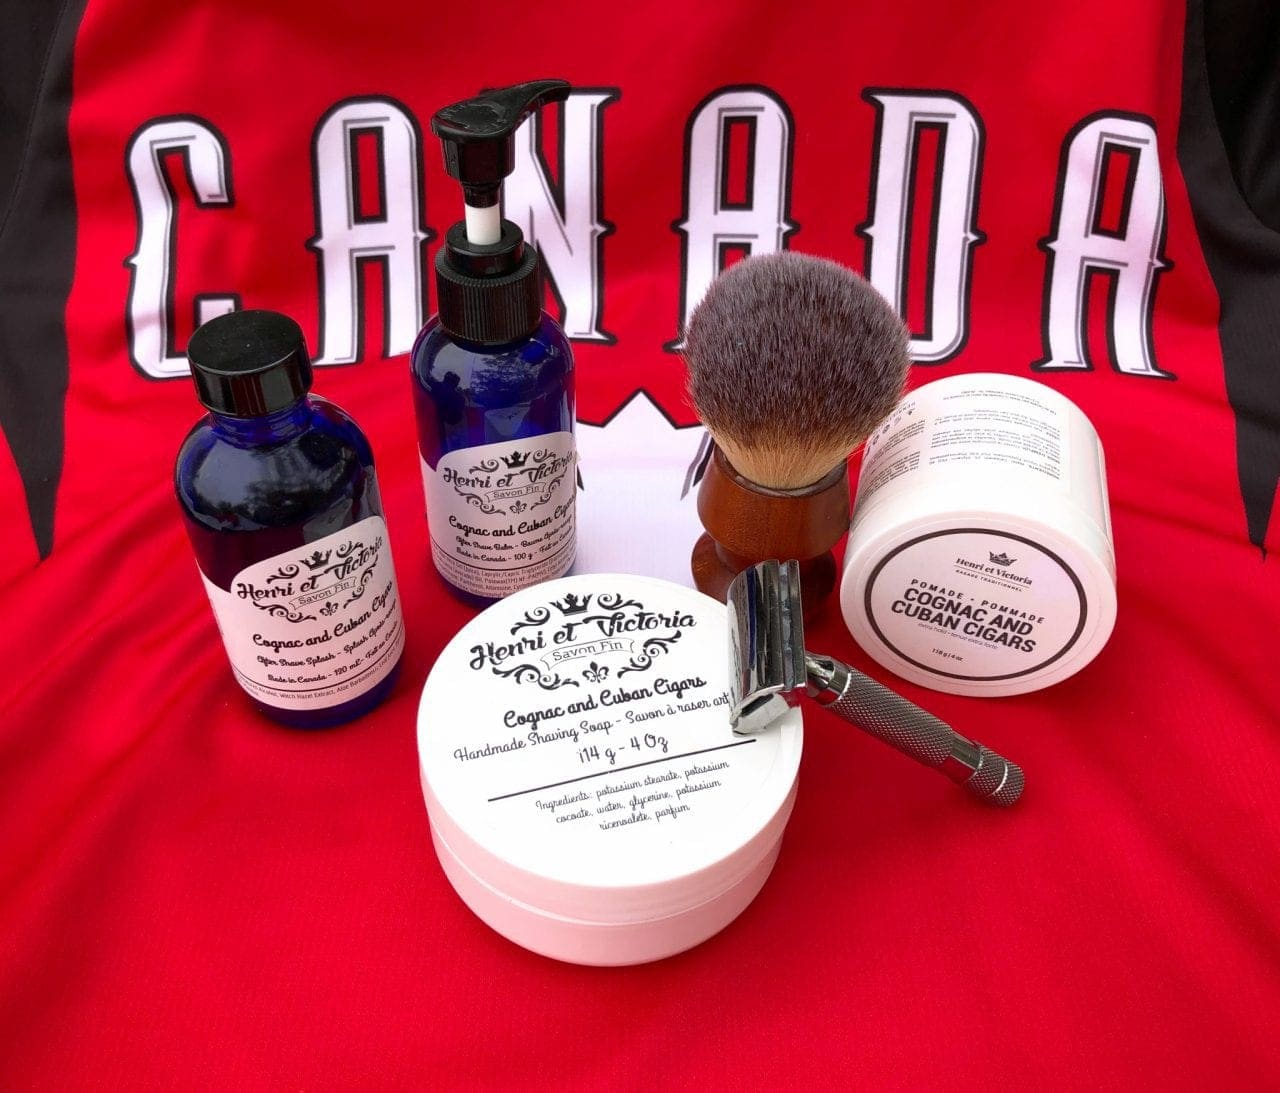 SOTD – September 3, 2018 #CanadianShaveWeek